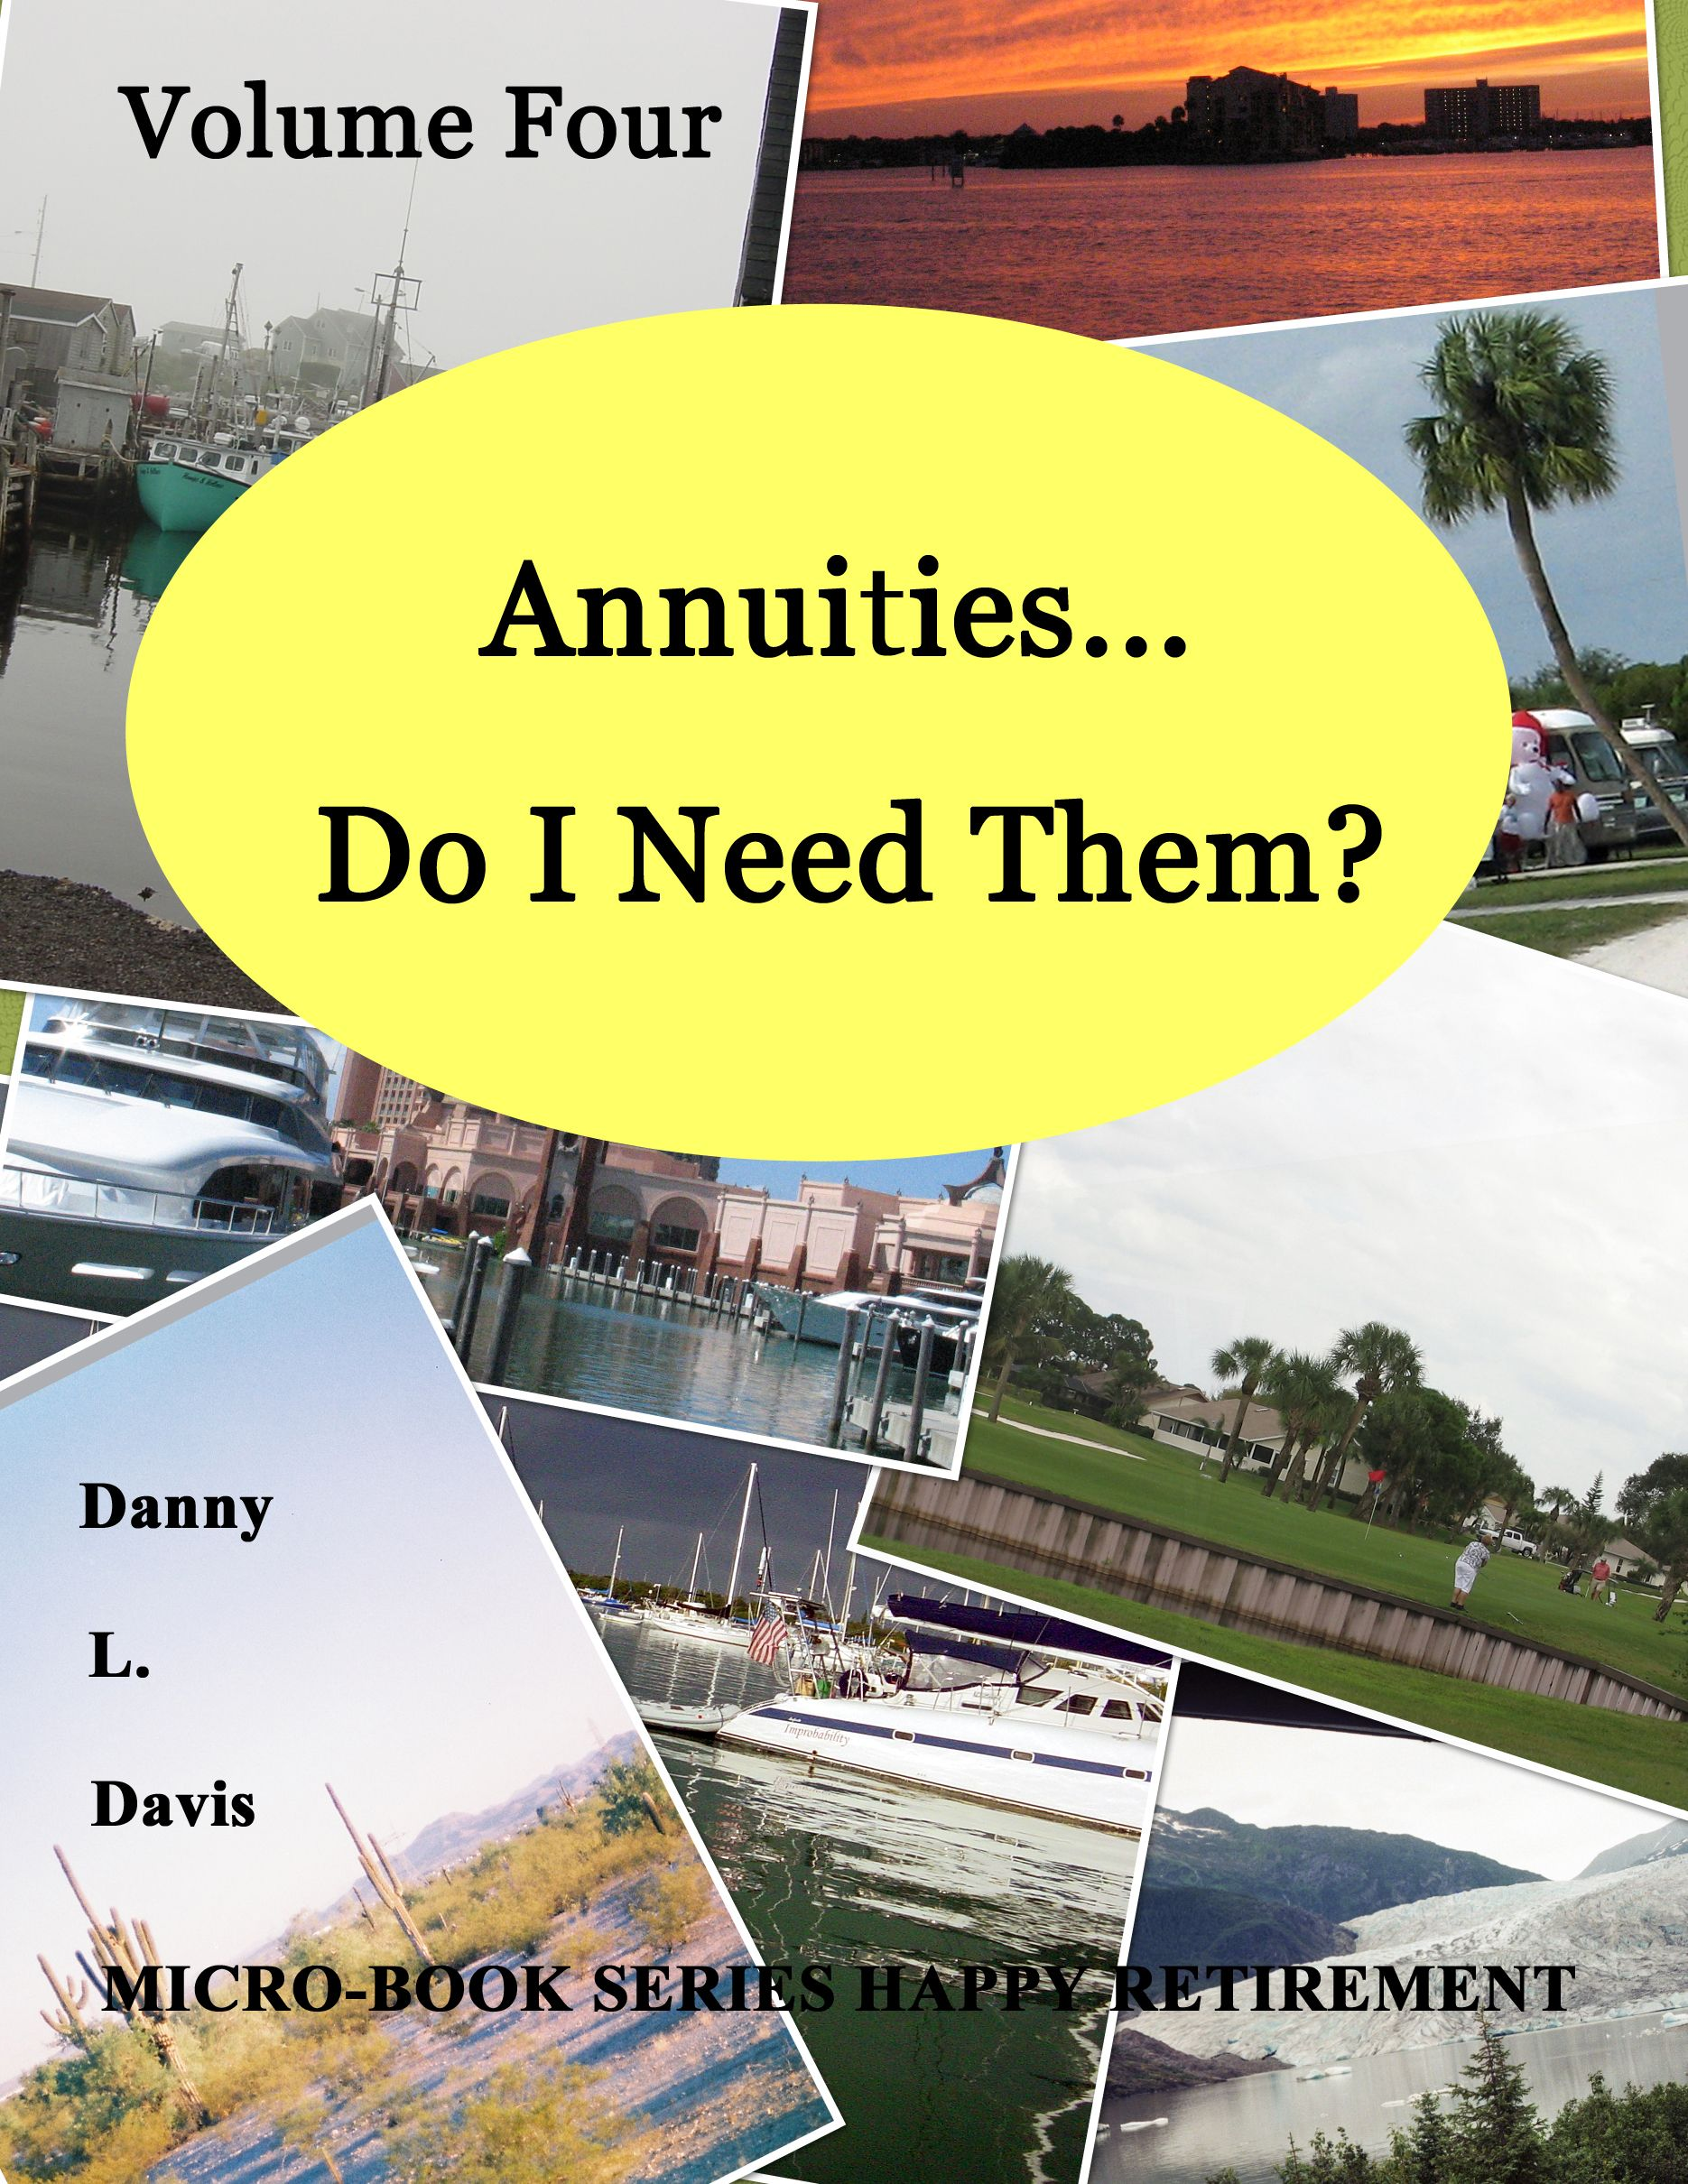 Annuities are a devilish conundrum faced by most investors. This Micro Book describes the way to determine, if they can be of benefit to you. These insurance products are only partially a financial investment. The Micro Book describes the two types of annuities, and how they are presented as many different solutions to your two basic needs: income and wealth creation. www.dannyldavis.com